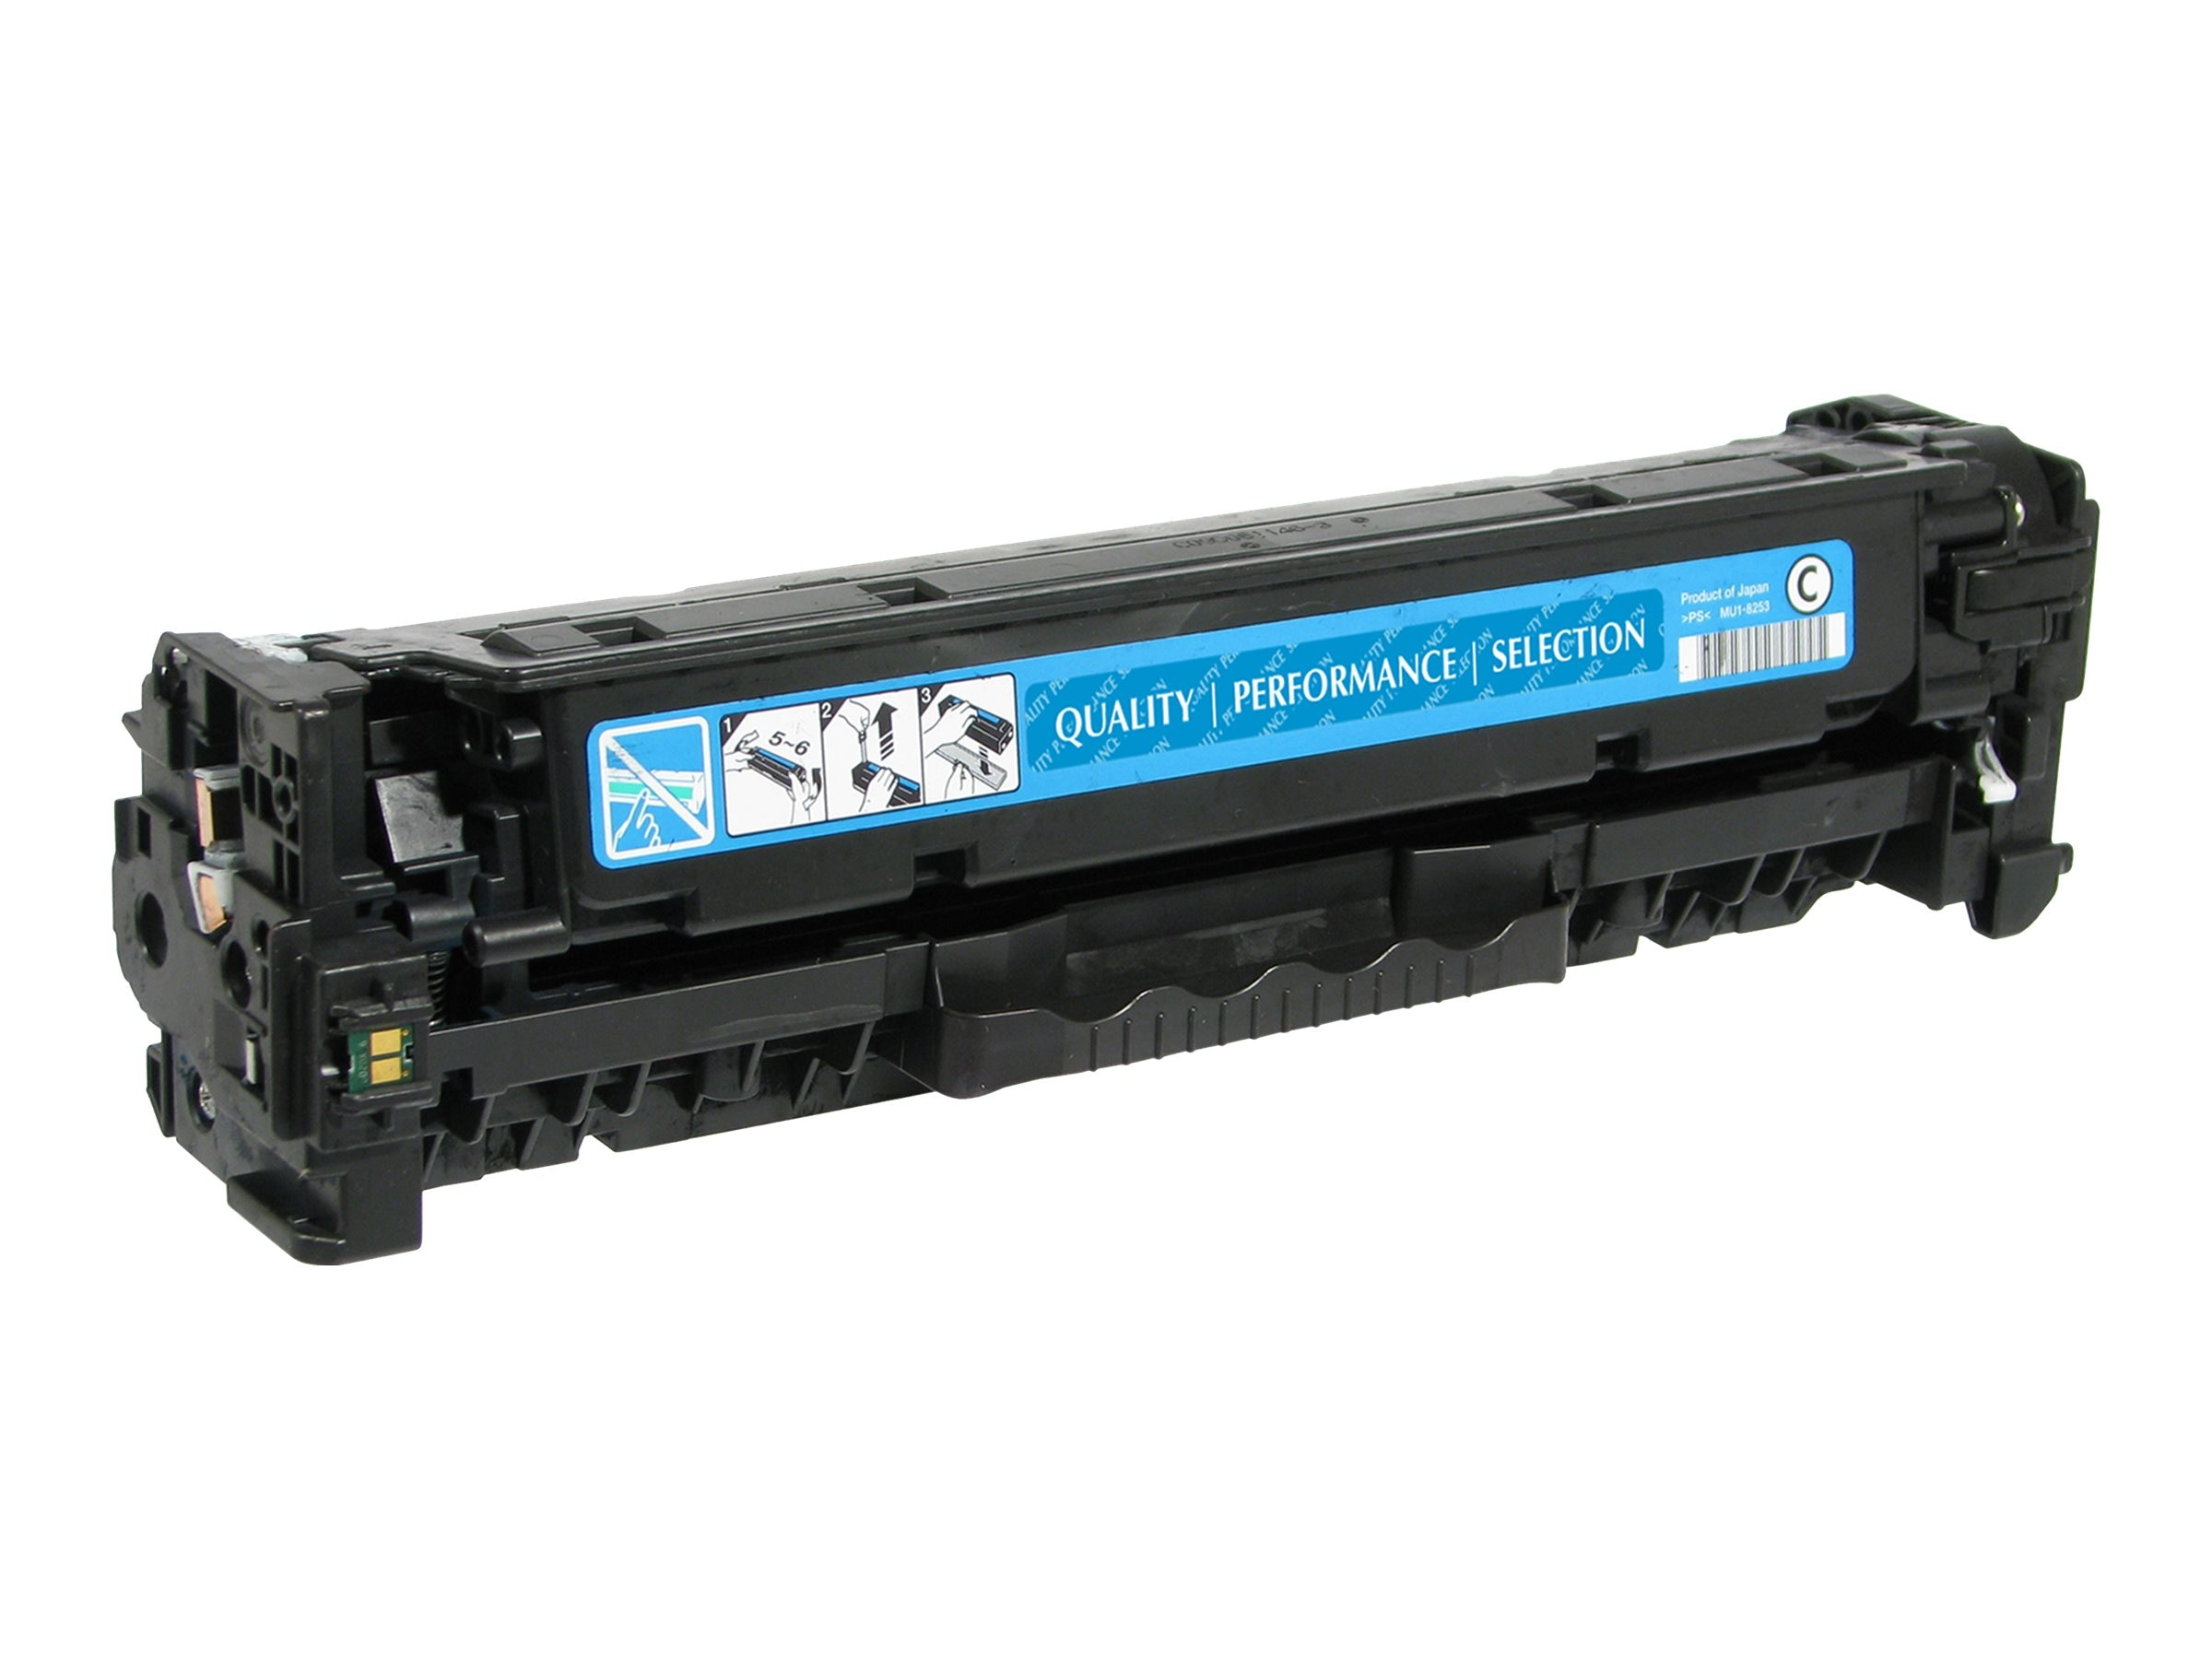 V7 CE411A Cyan Toner Cartridge for HP LaserJet Pro Color M375 M451